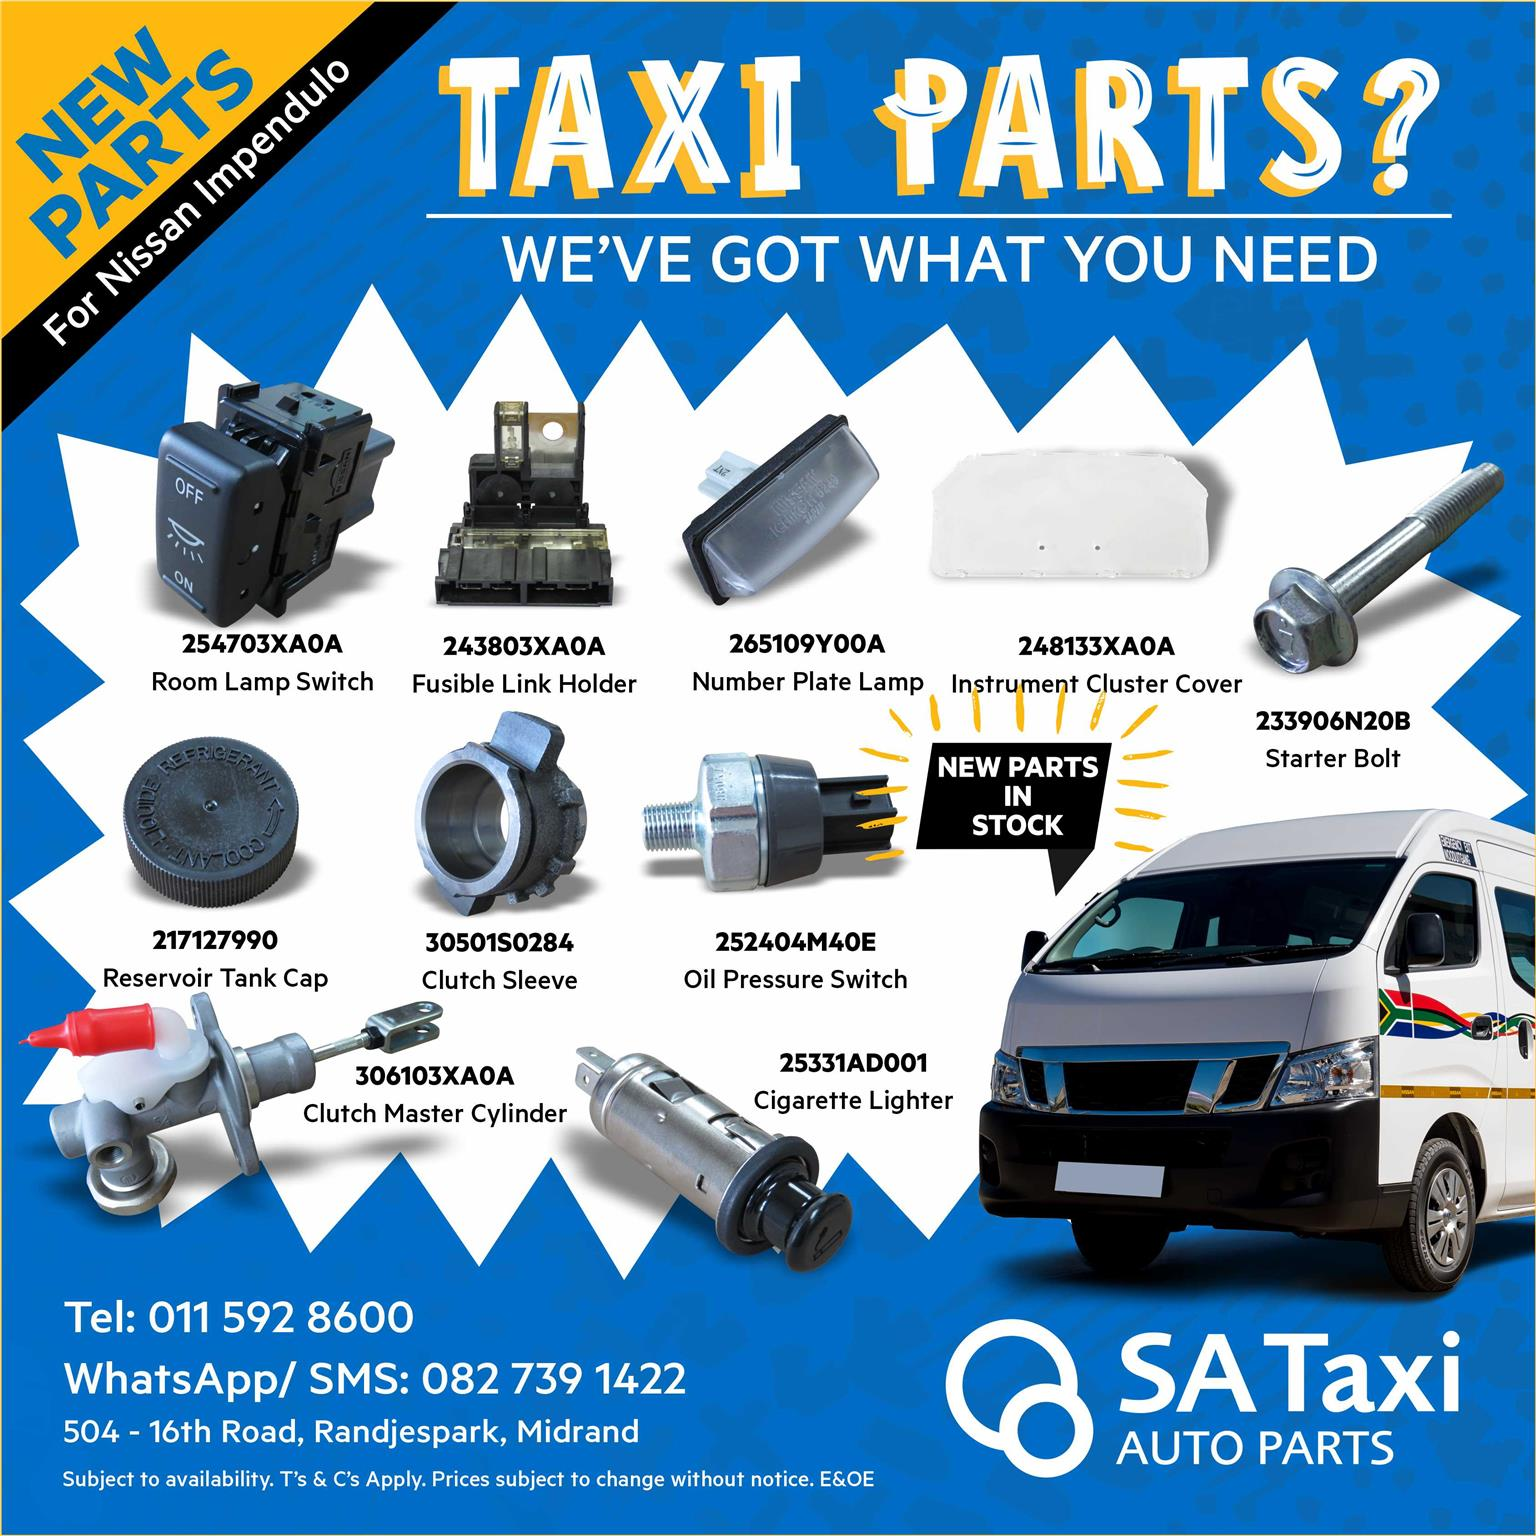 New Bumper Bracket Clip for Nissan NV350 Impendulo - SA Taxi Auto Parts quality spares